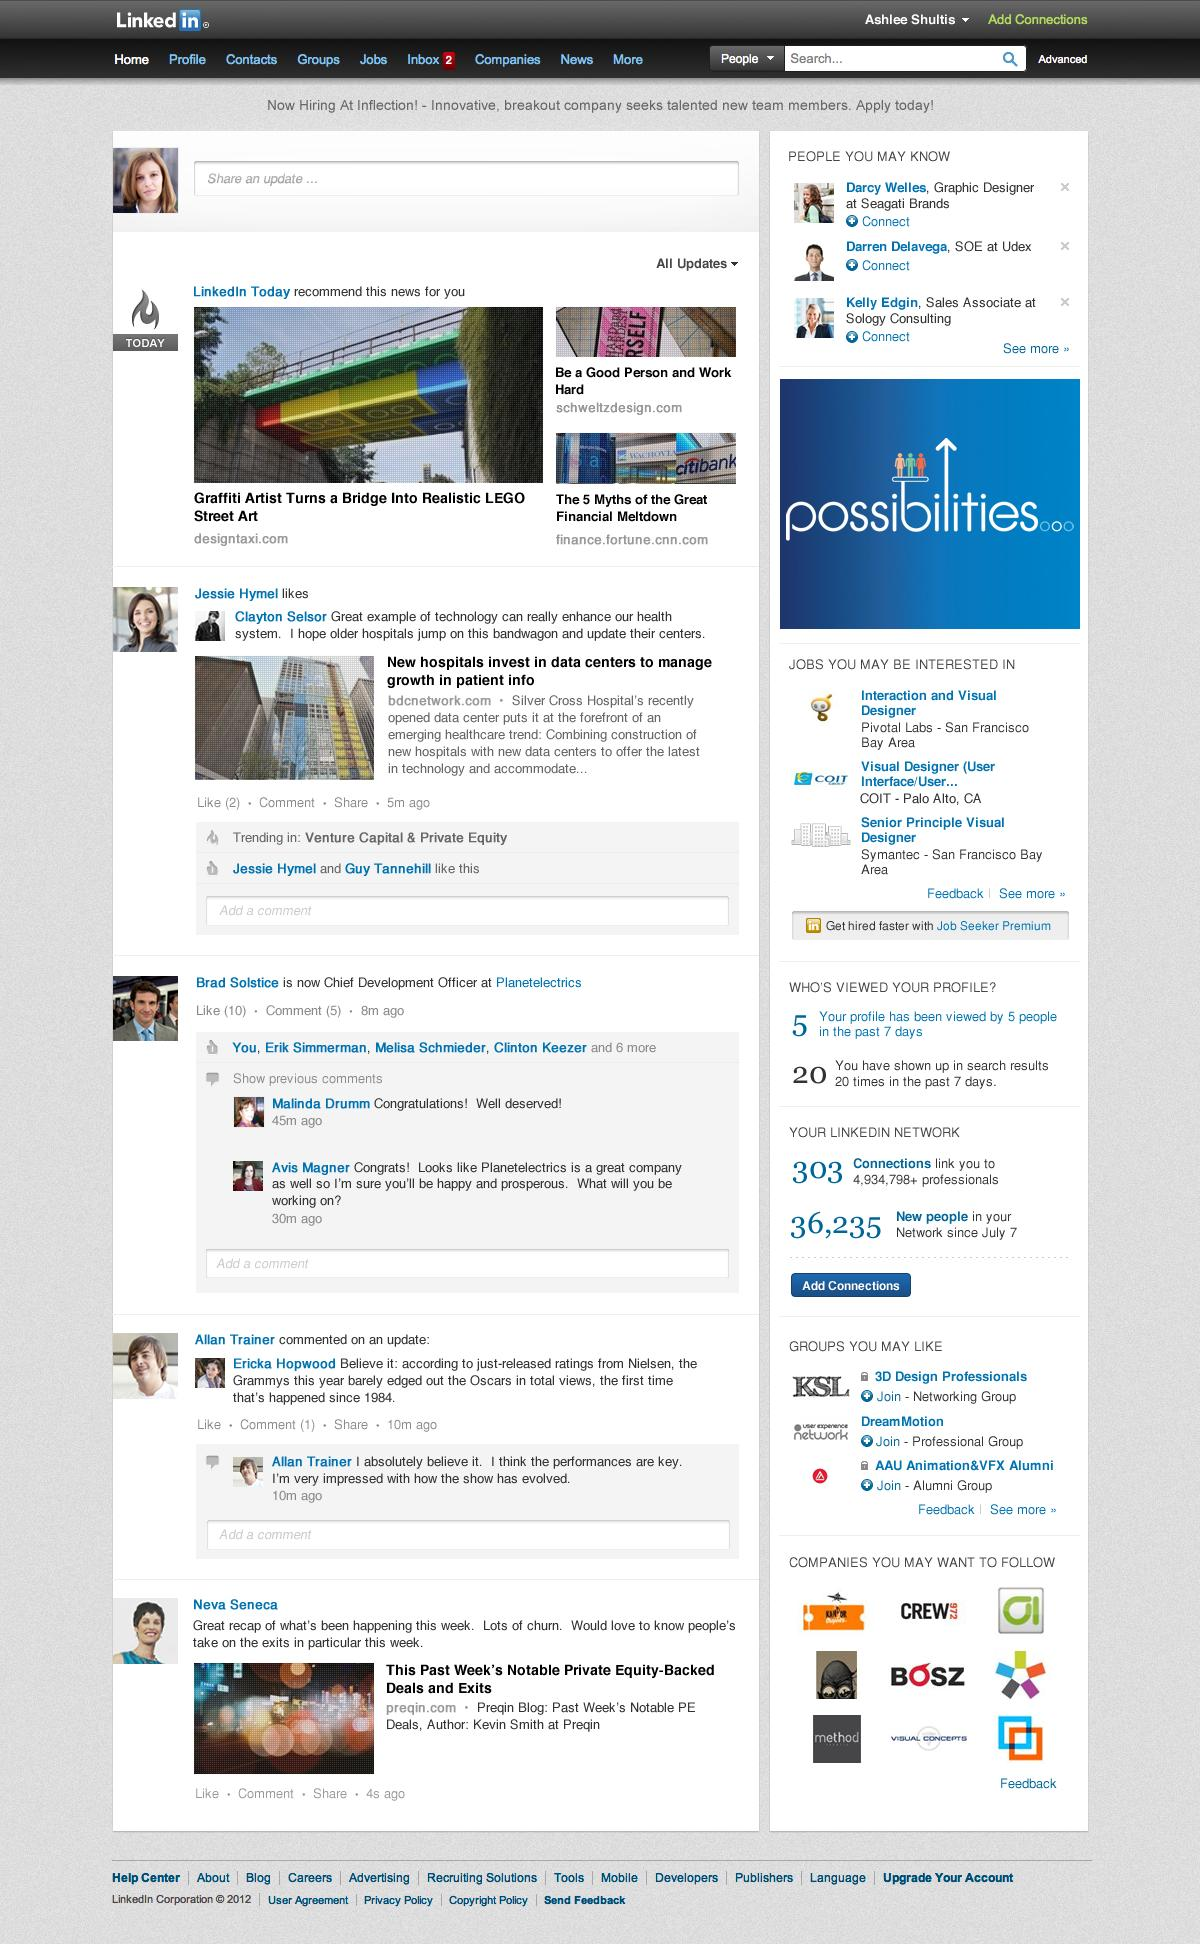 linkedin homepage design